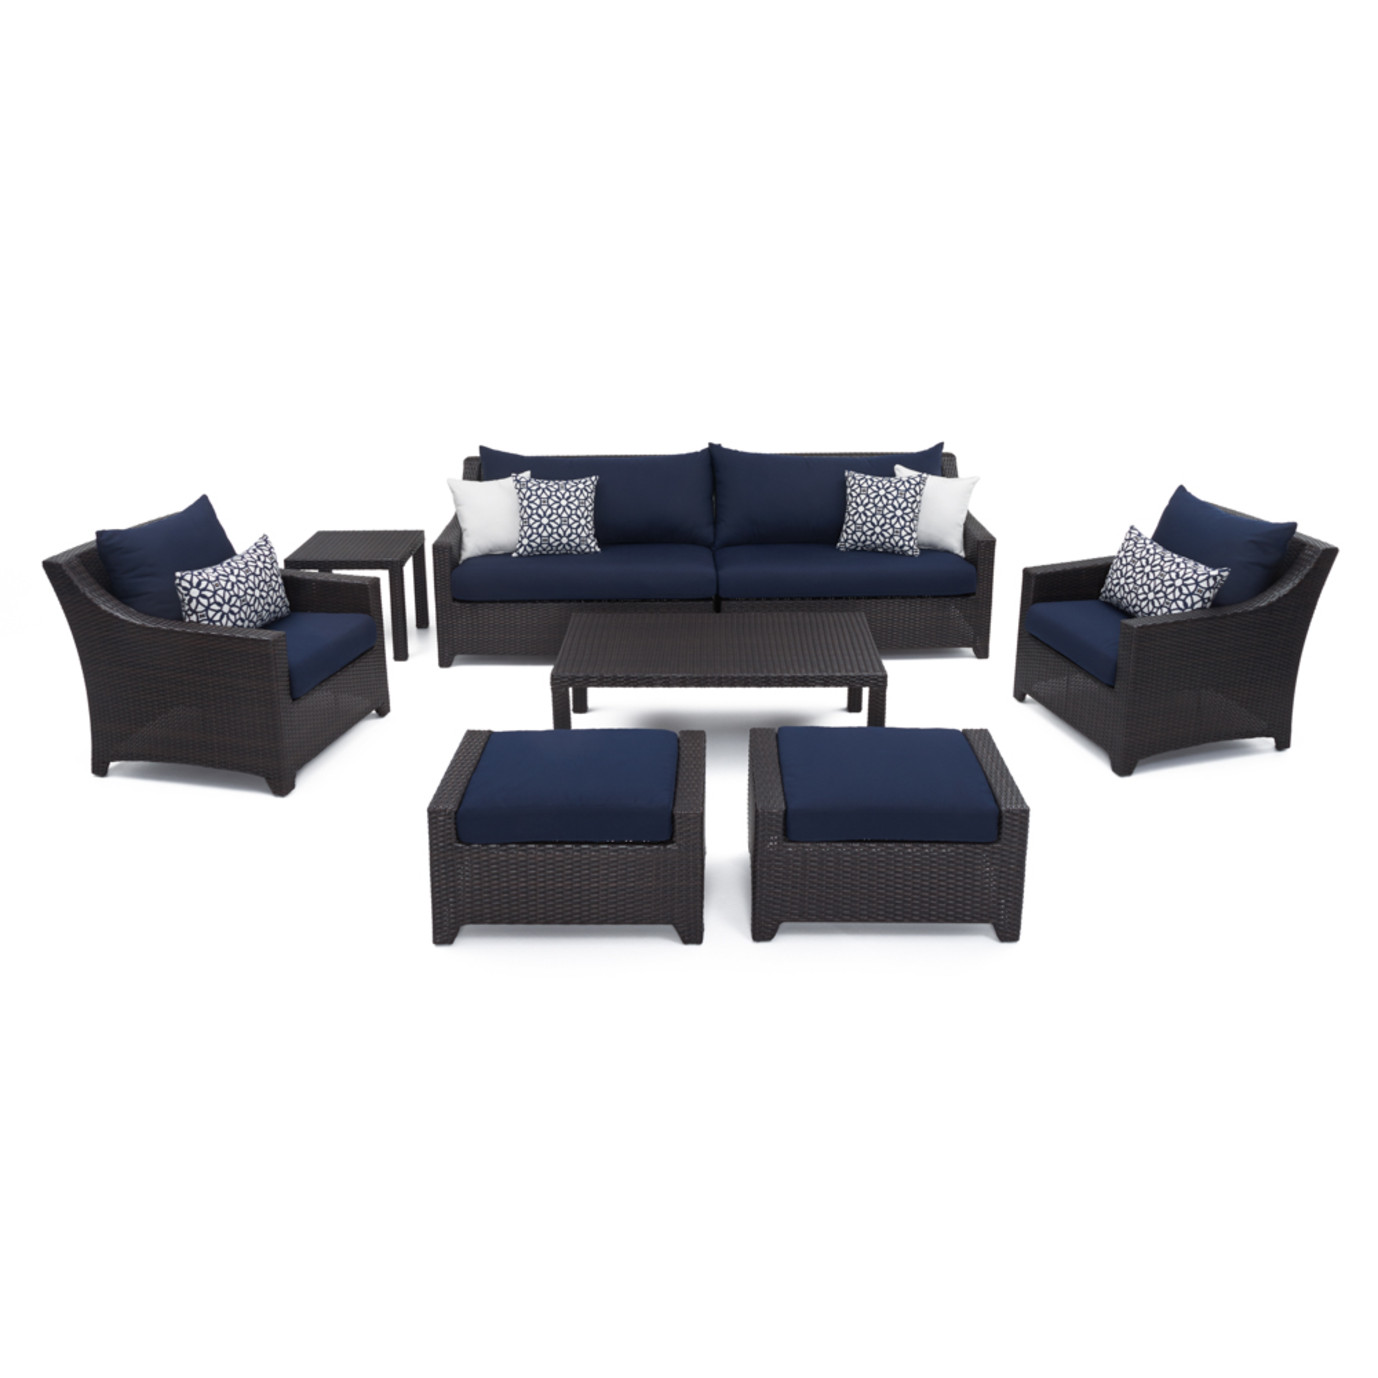 Deco 8pc Sofa Set With Furniture Covers Navy Blue Rst